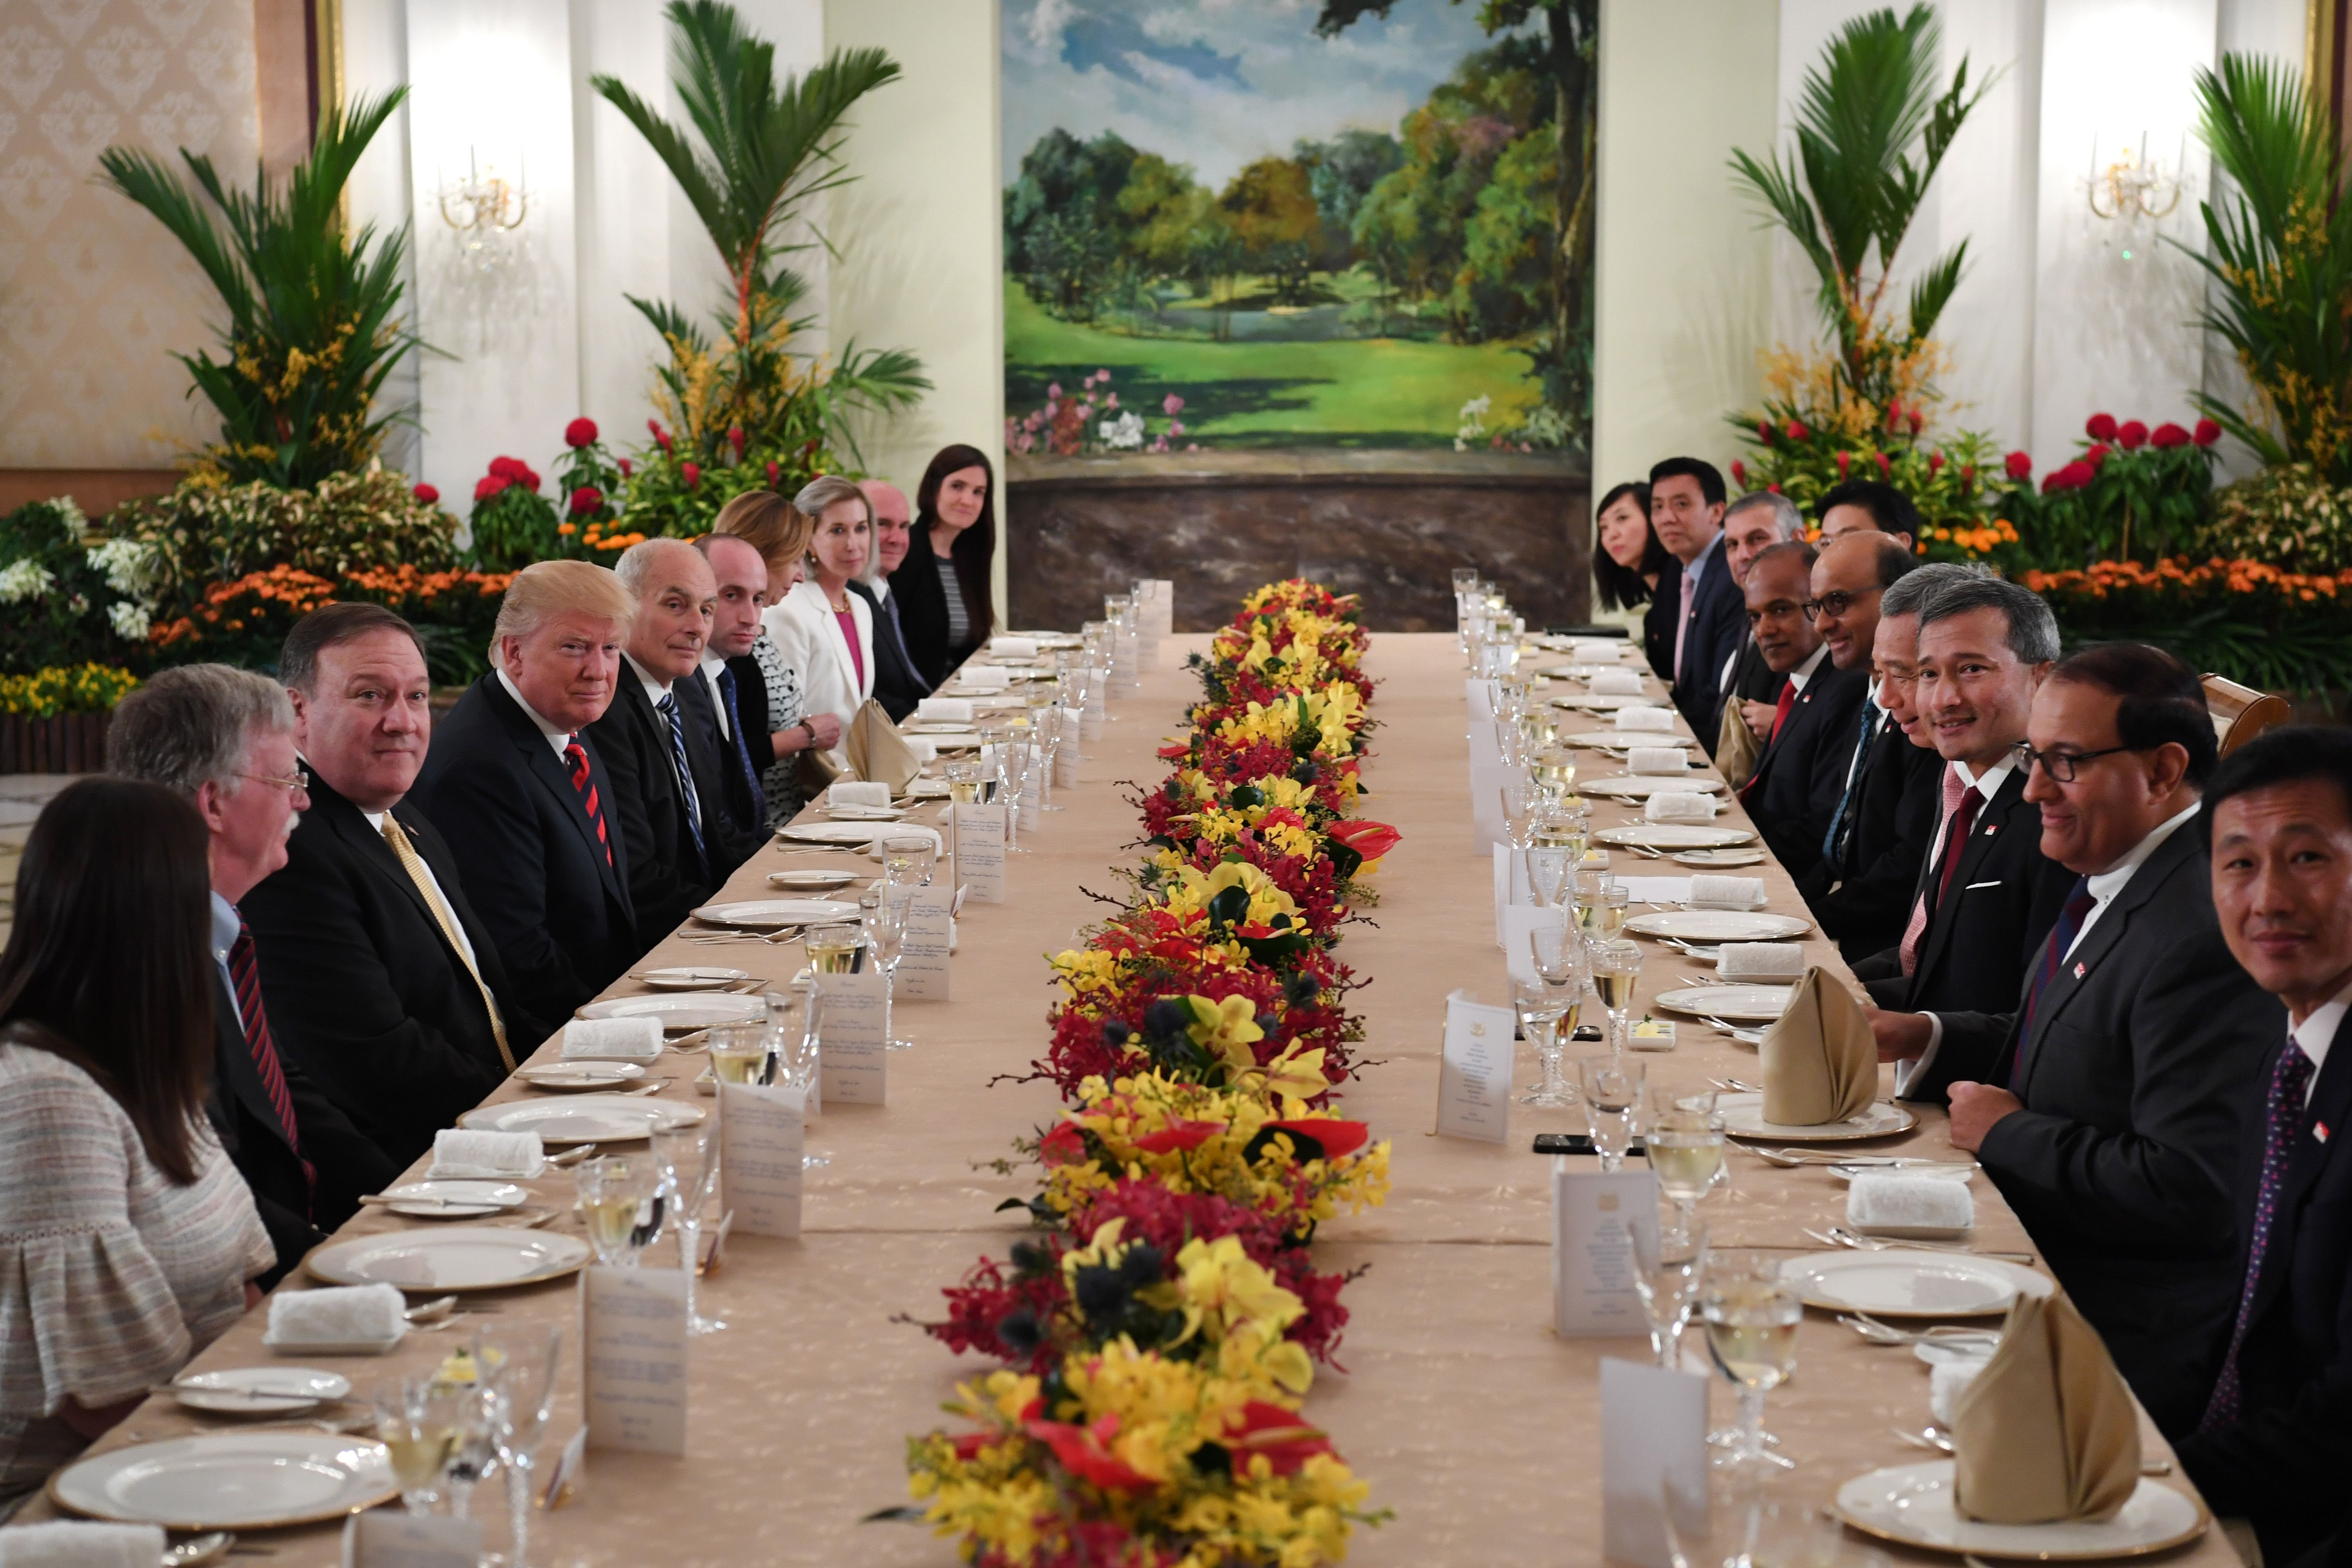 President Donald Trump and his delegation share a working lunch Singapore's Prime Minister Lee Hsien Loong (4th R) and his team during the U.S. leader's visit to Singapore on June 11, 2018.